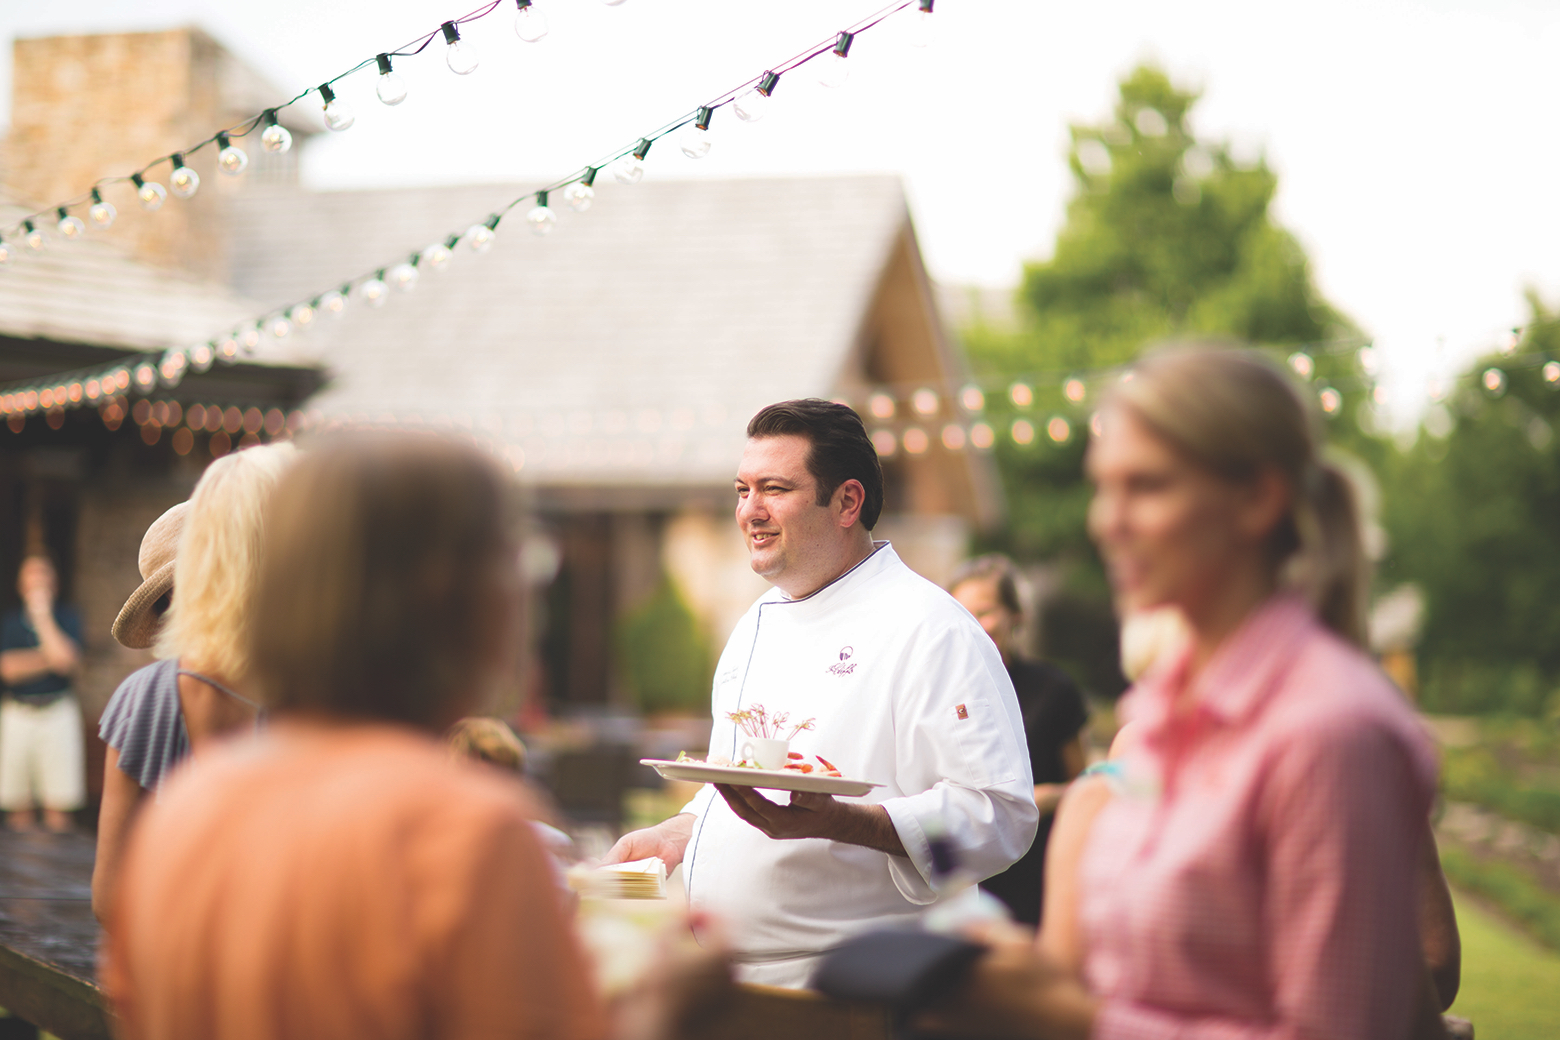 Chef Turck at Keowee Vineyards